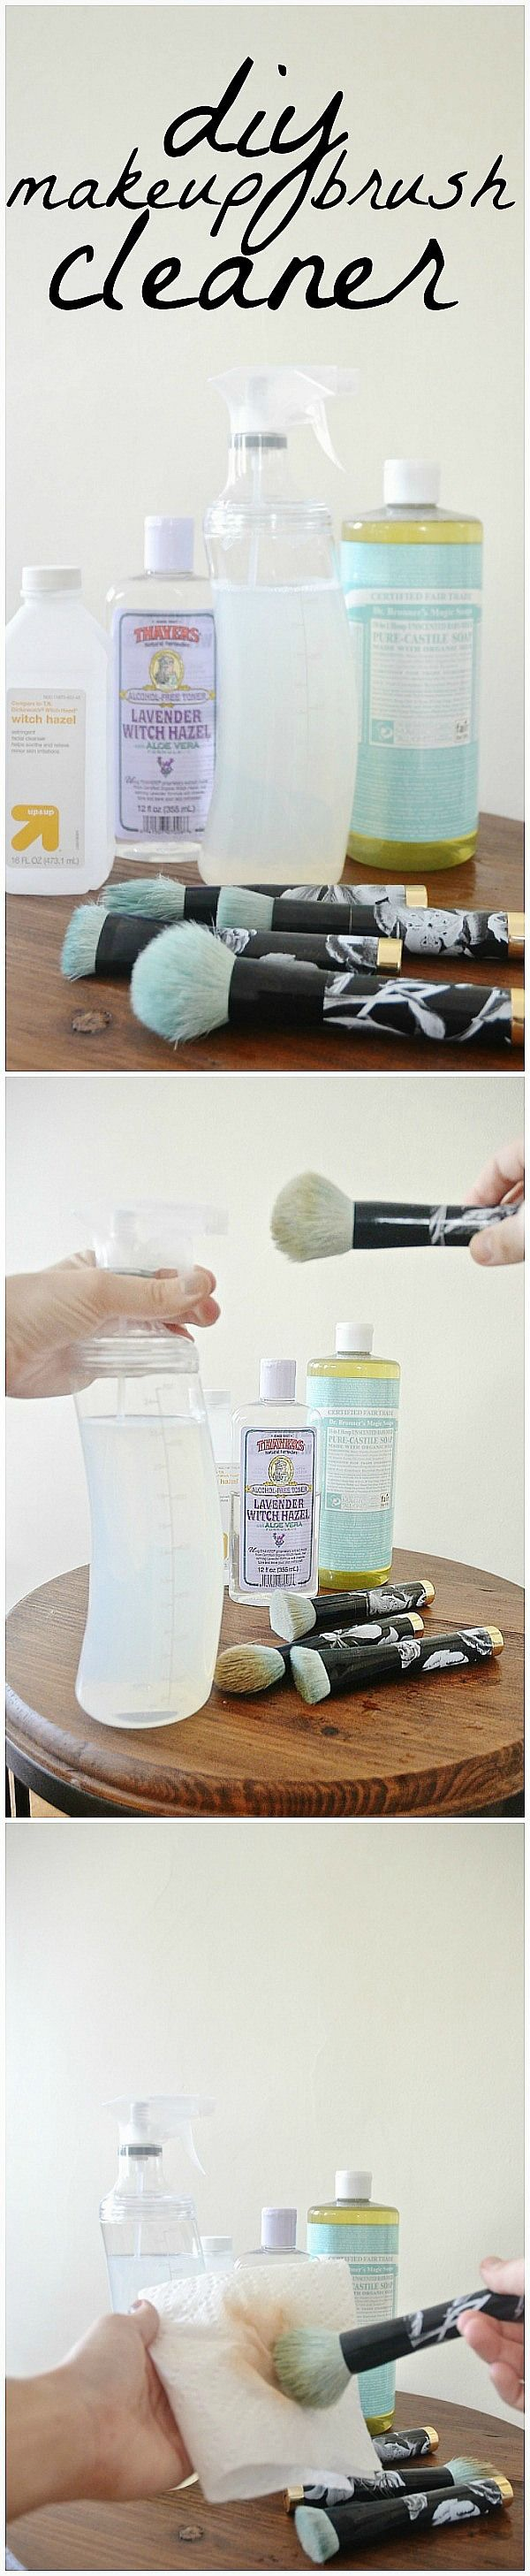 DIY Makeup Brush Cleaner Diy makeup brush, How to clean